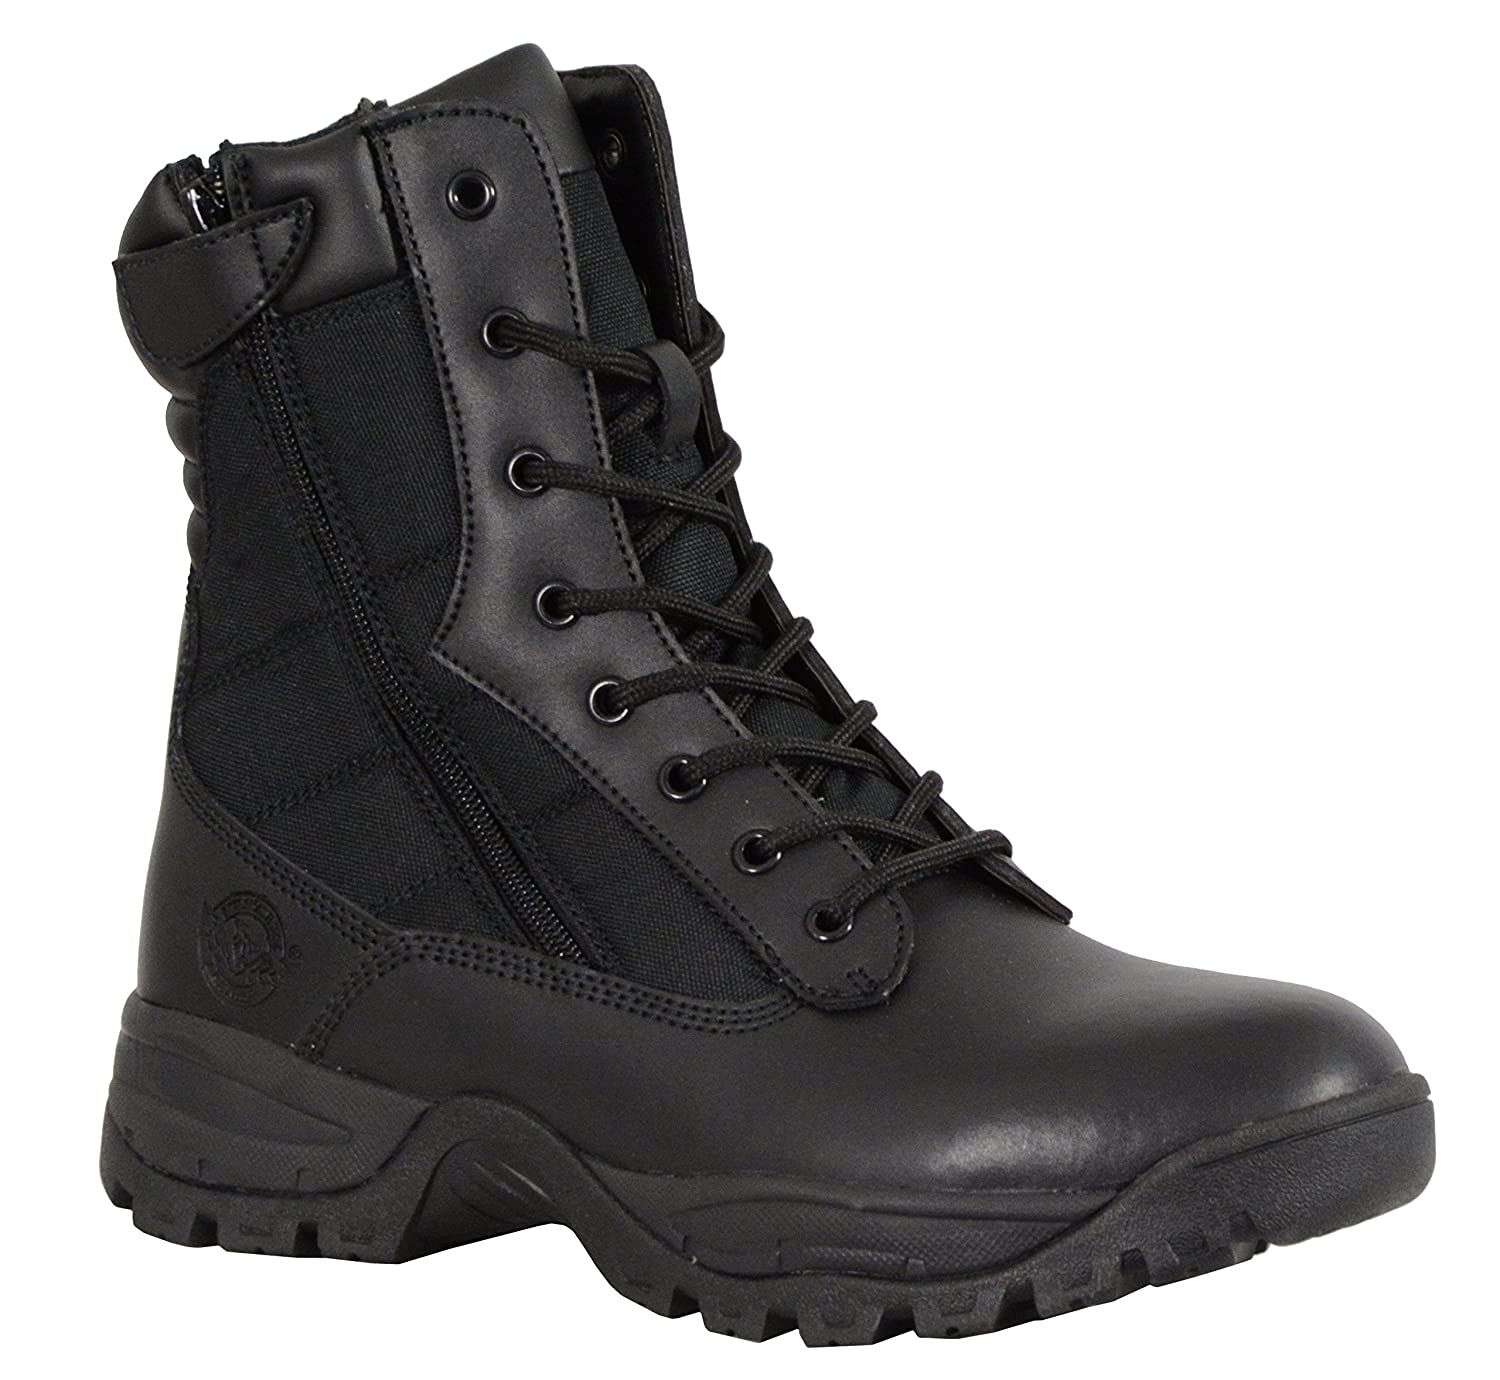 Milwaukee Performance Mens Leather Tactical Boots with Side Zipper Black, Size 7 9